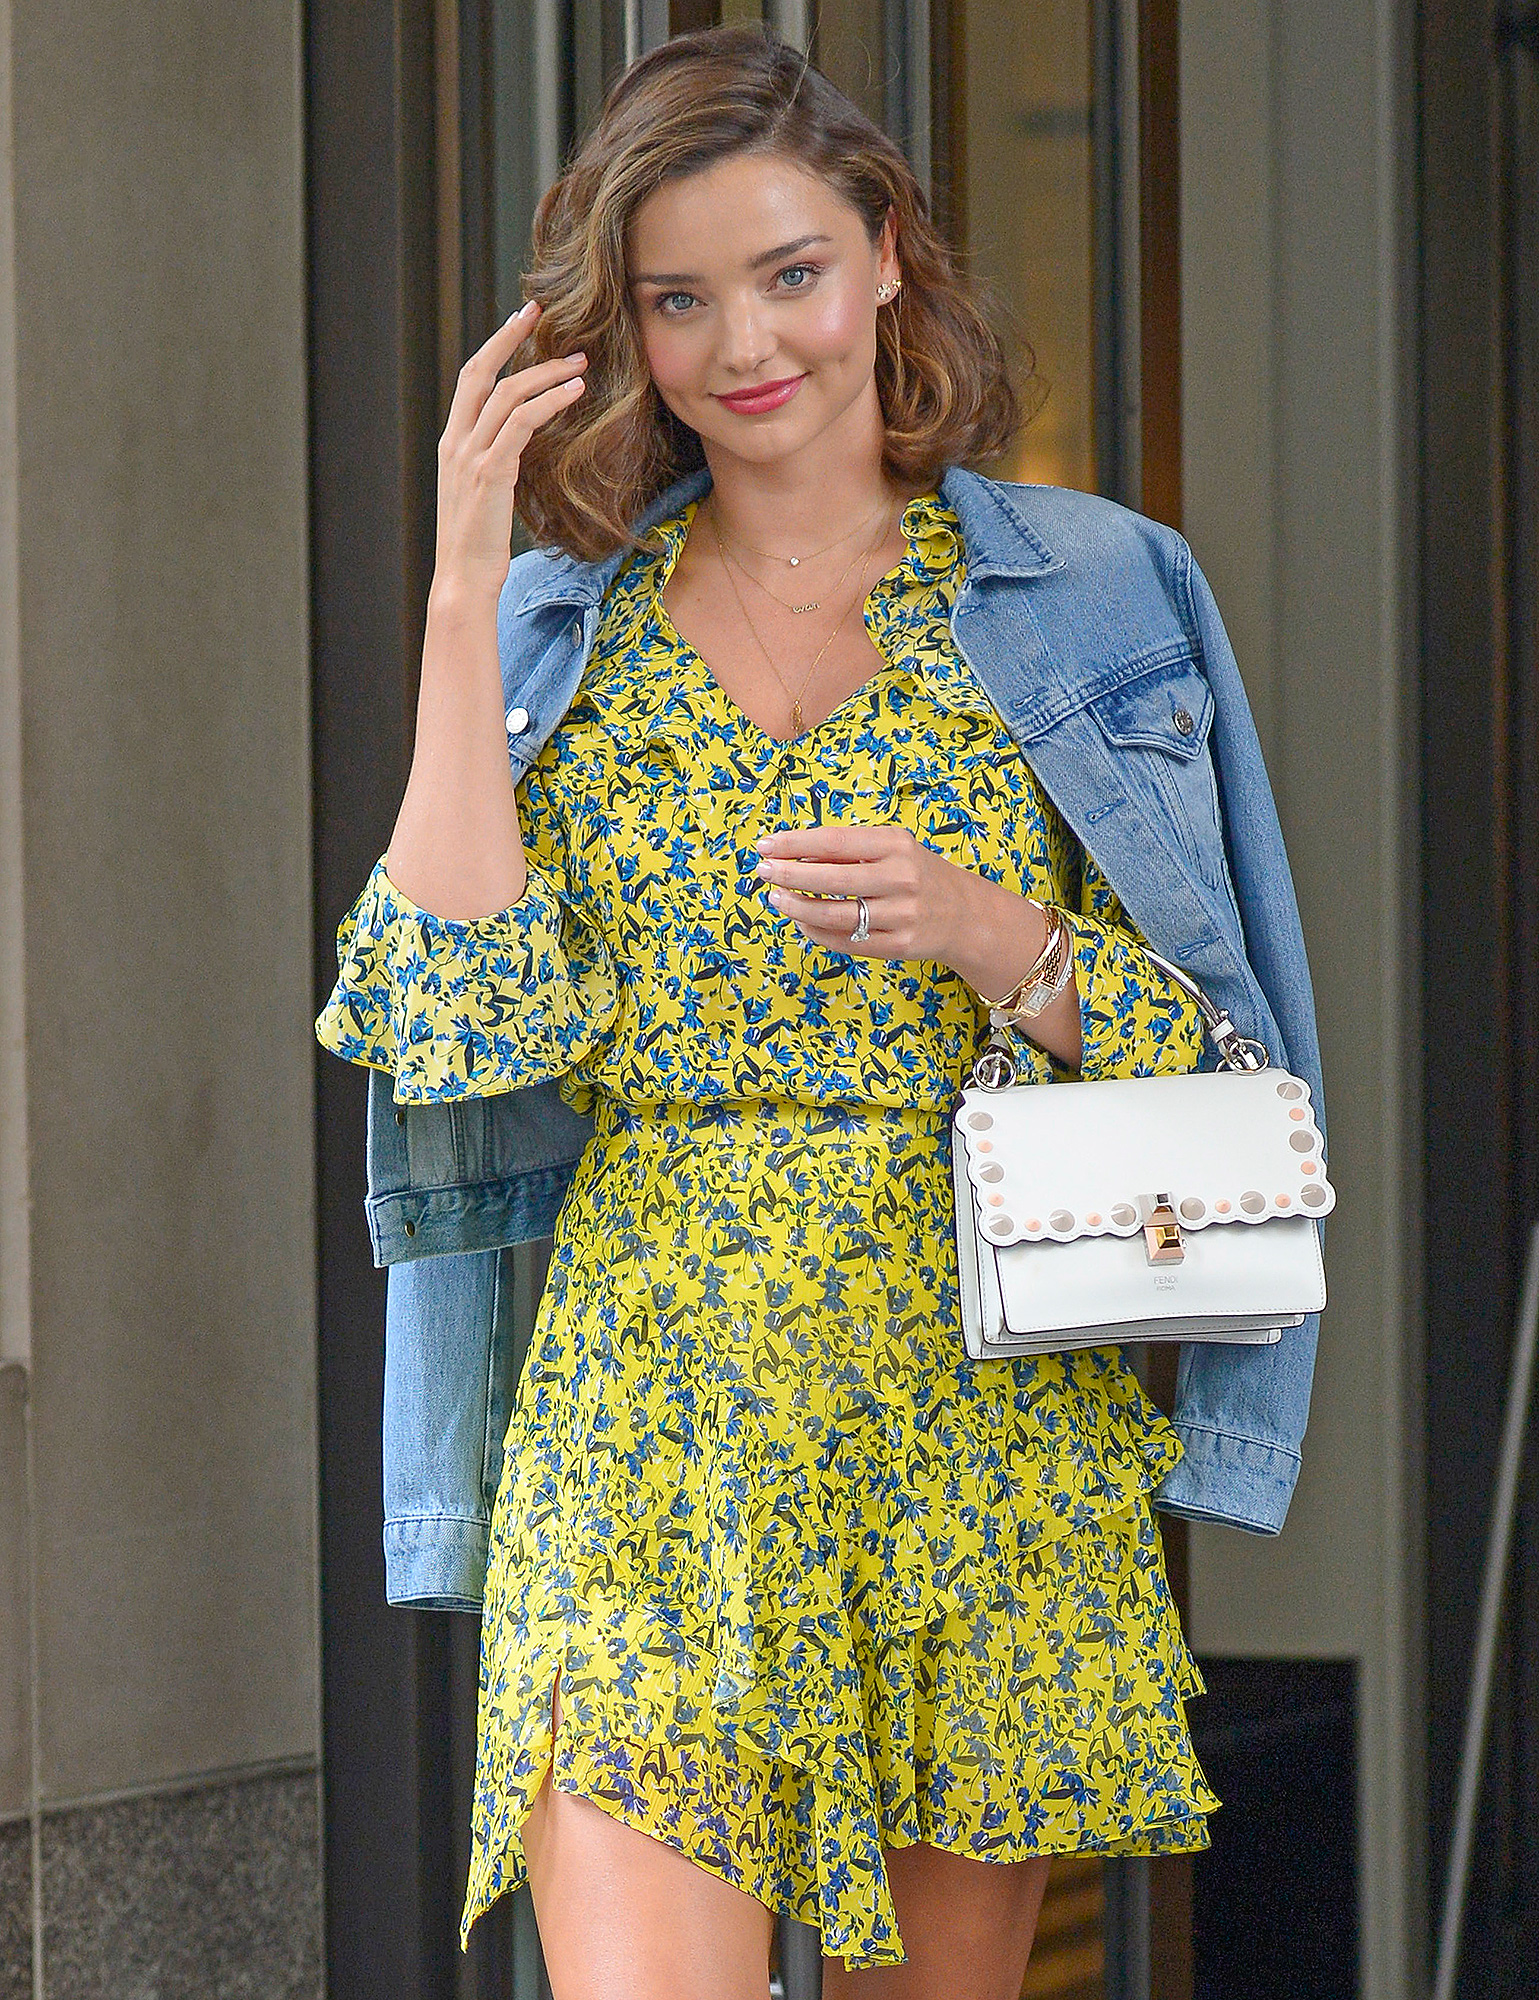 Miranda Kerr wears a yellow floral dress accented with denim jacket as she heads out of her hotel in New York City